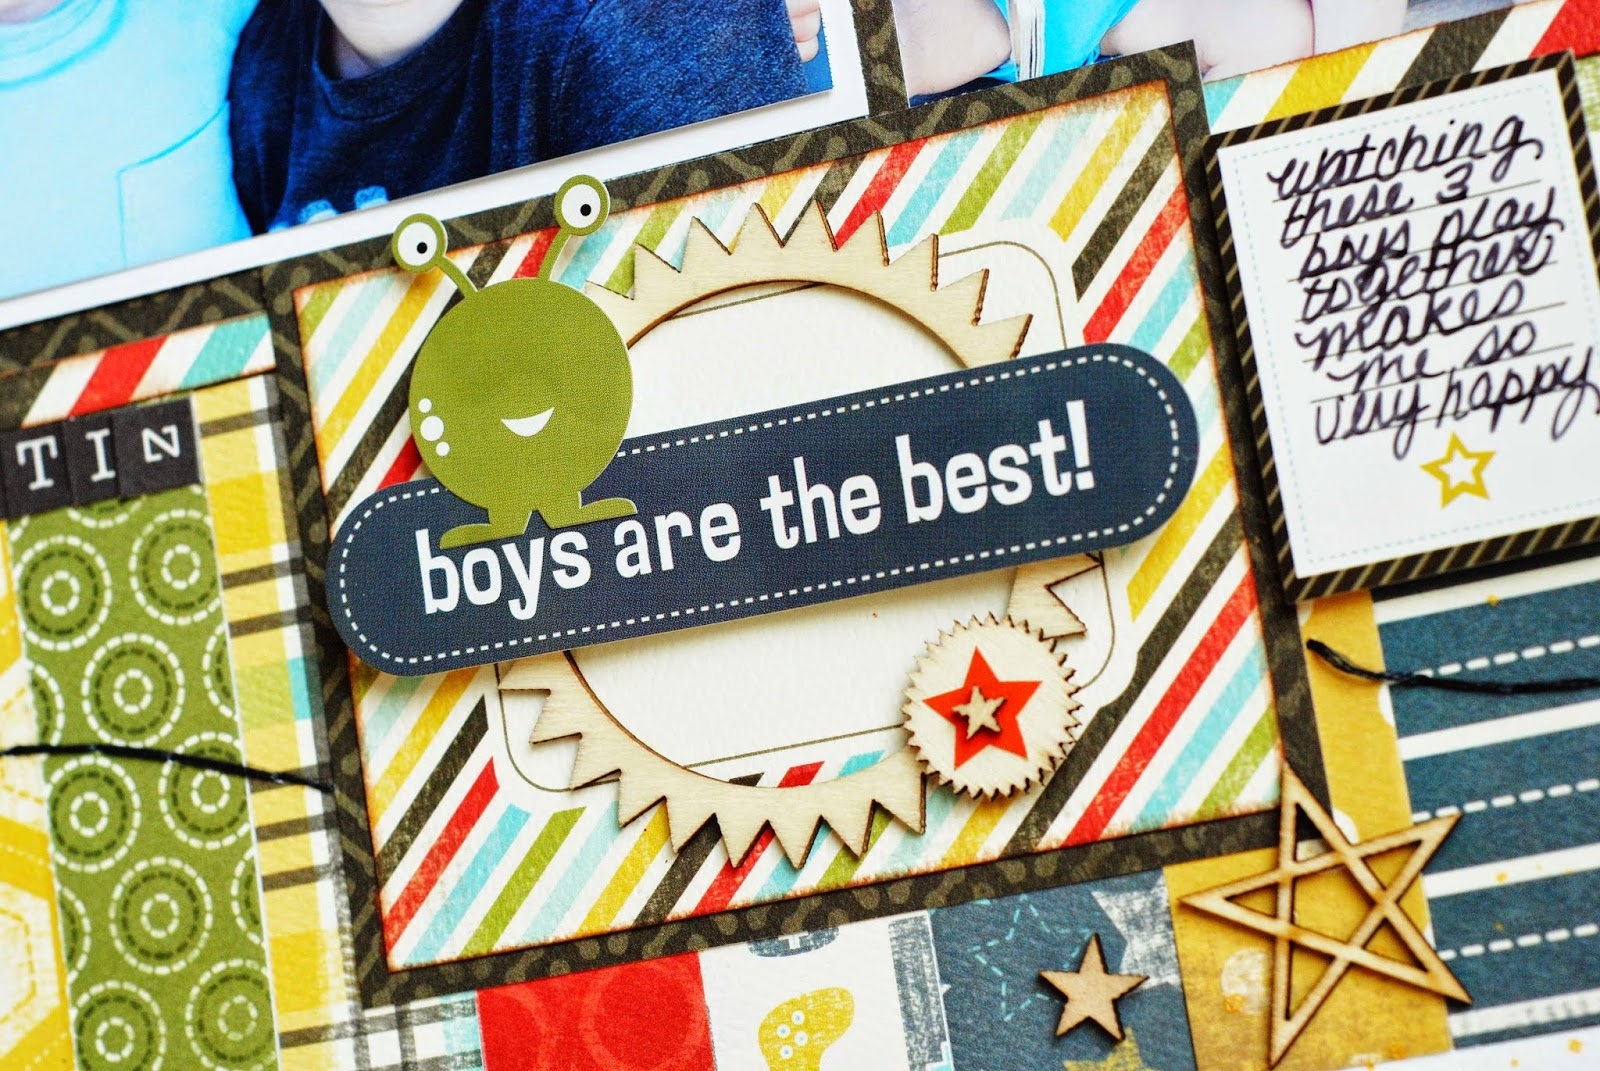 How to scrapbook magazines - I Know I Can T Remember The Last Time I Created A Two Page Layout And I Love How It Turned Out I Can T Wait To See What You Think